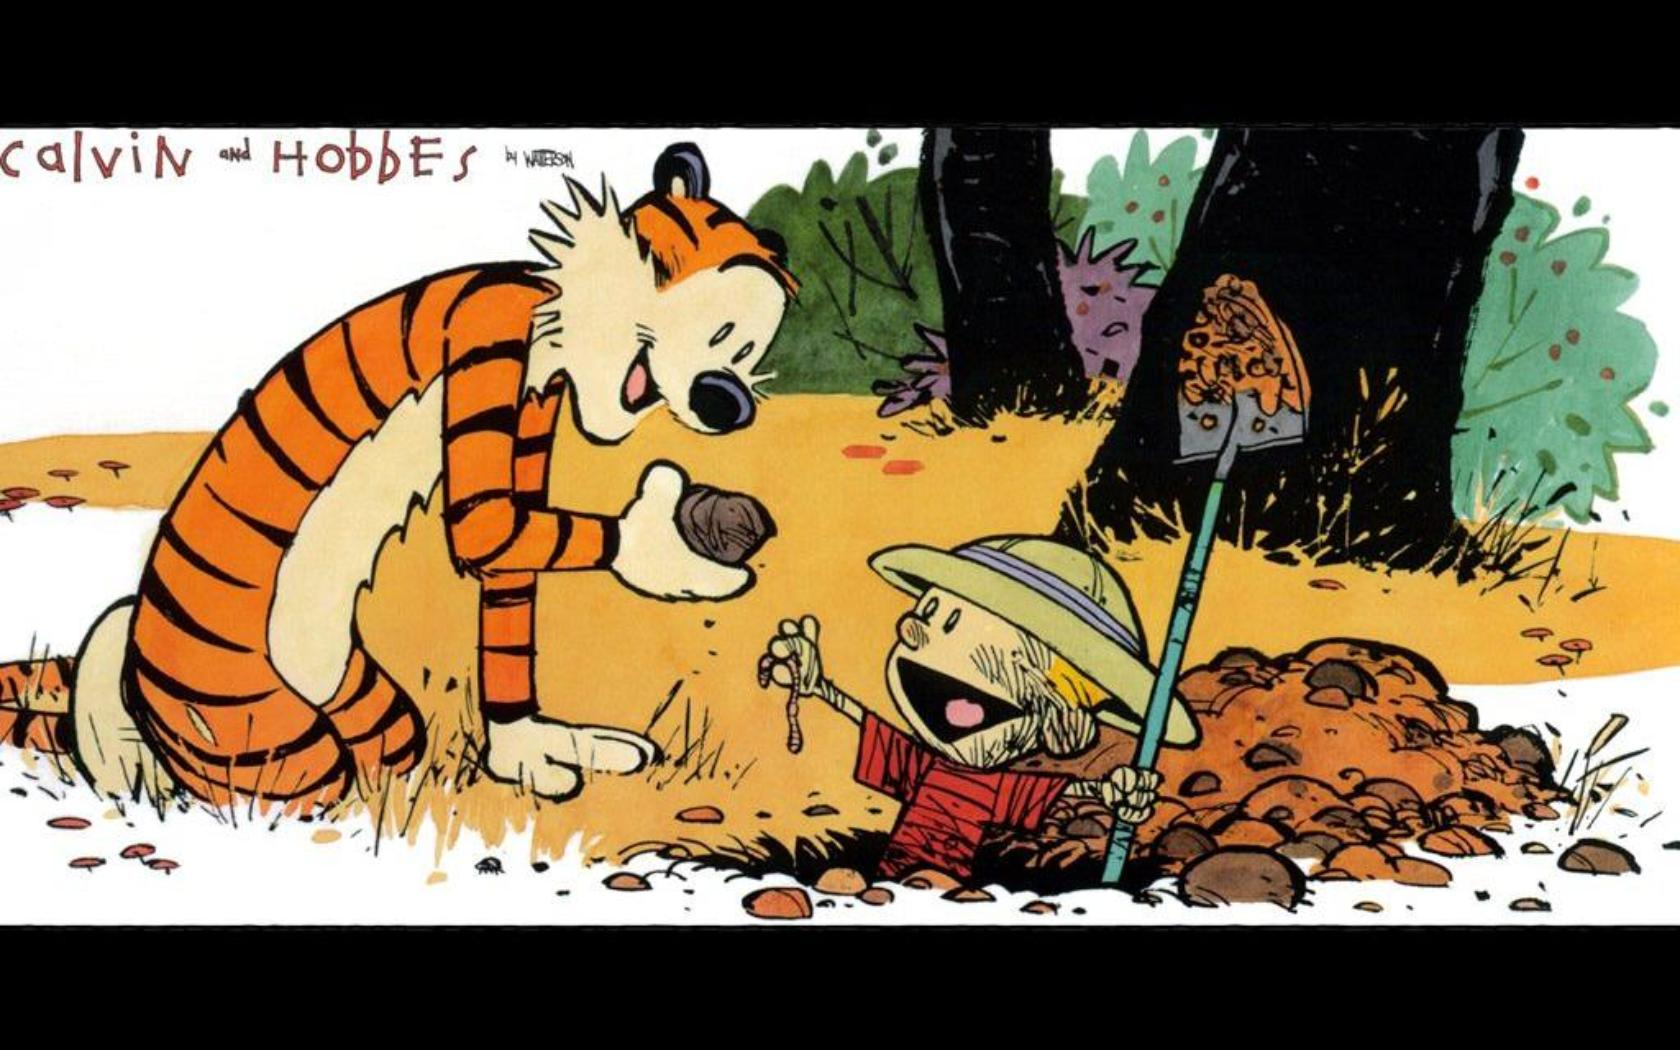 Calvin And Hobbes Art Hd Wallpaper 5047 1680x1050